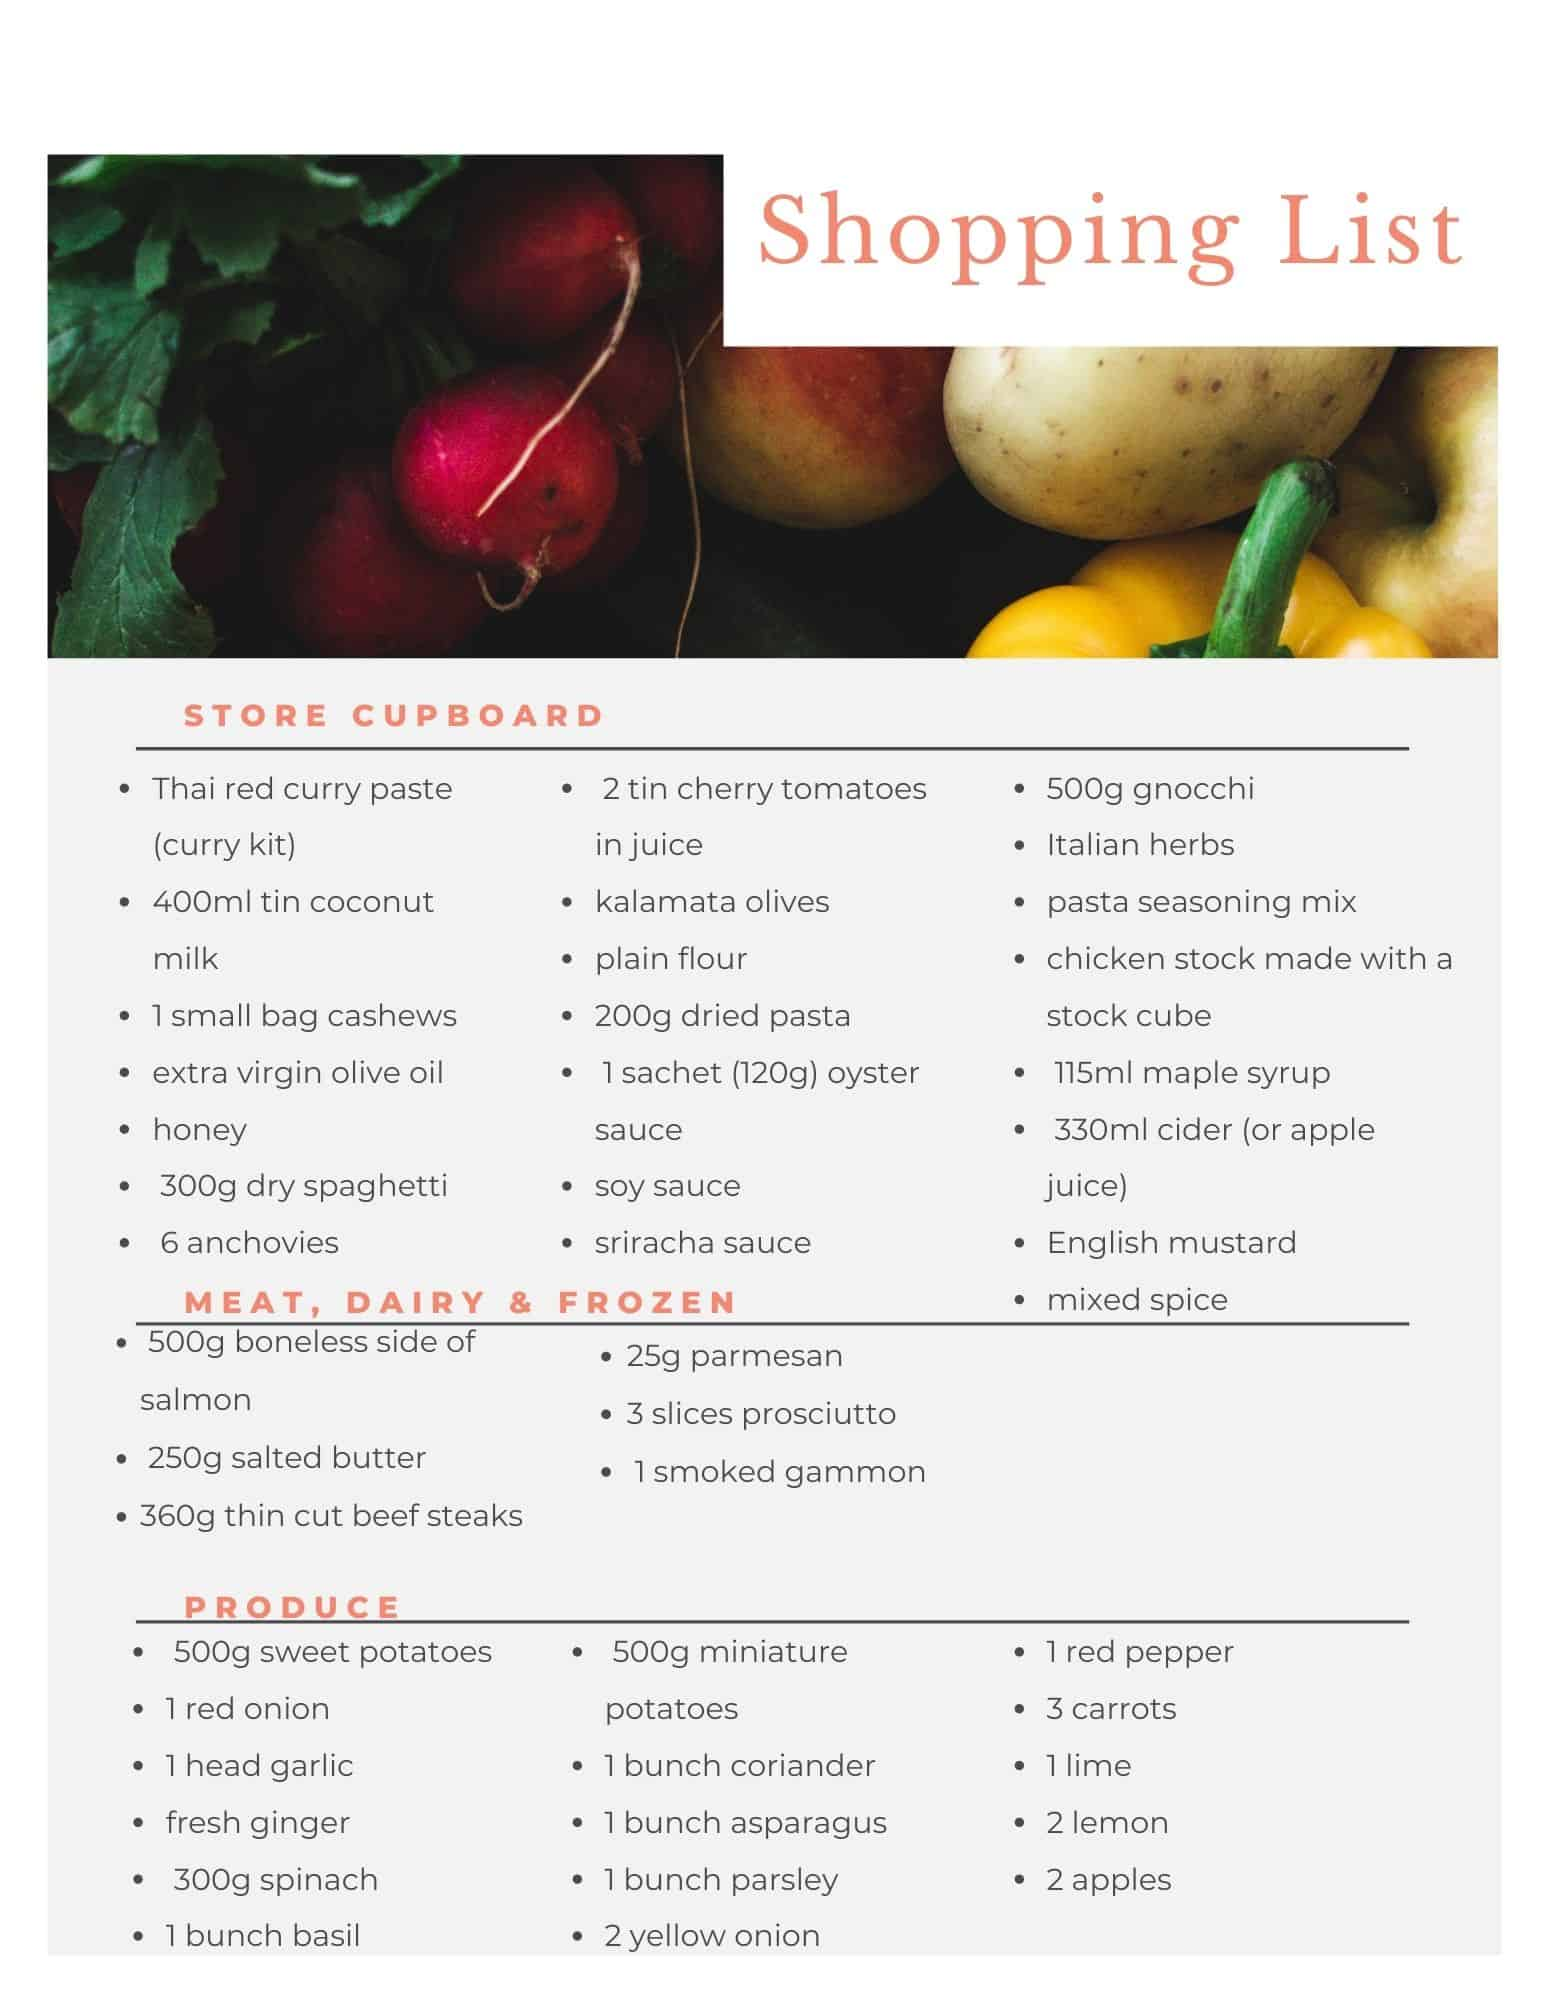 Aldi budget meal plan shopping list for easy healthy recipes.